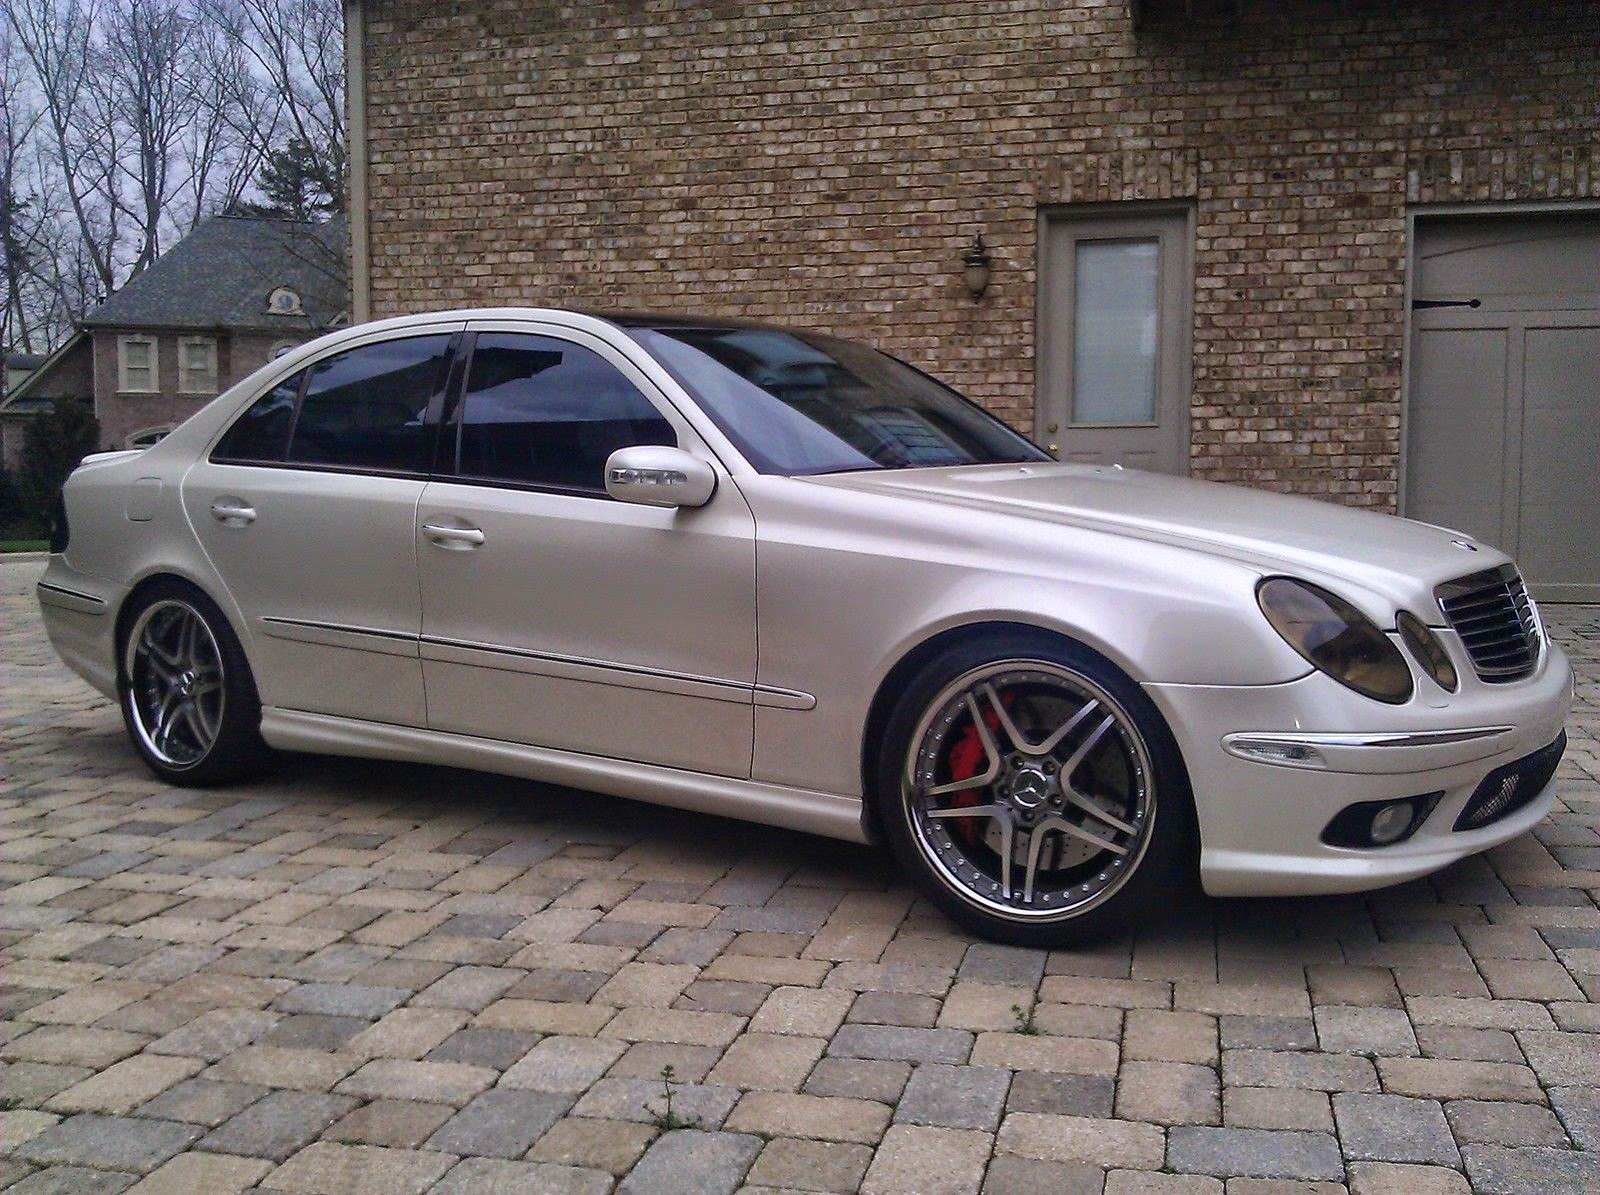 Mercedes benz w211 e55 amg on autobahn wheels benztuning for Mercedes benz wheels rims